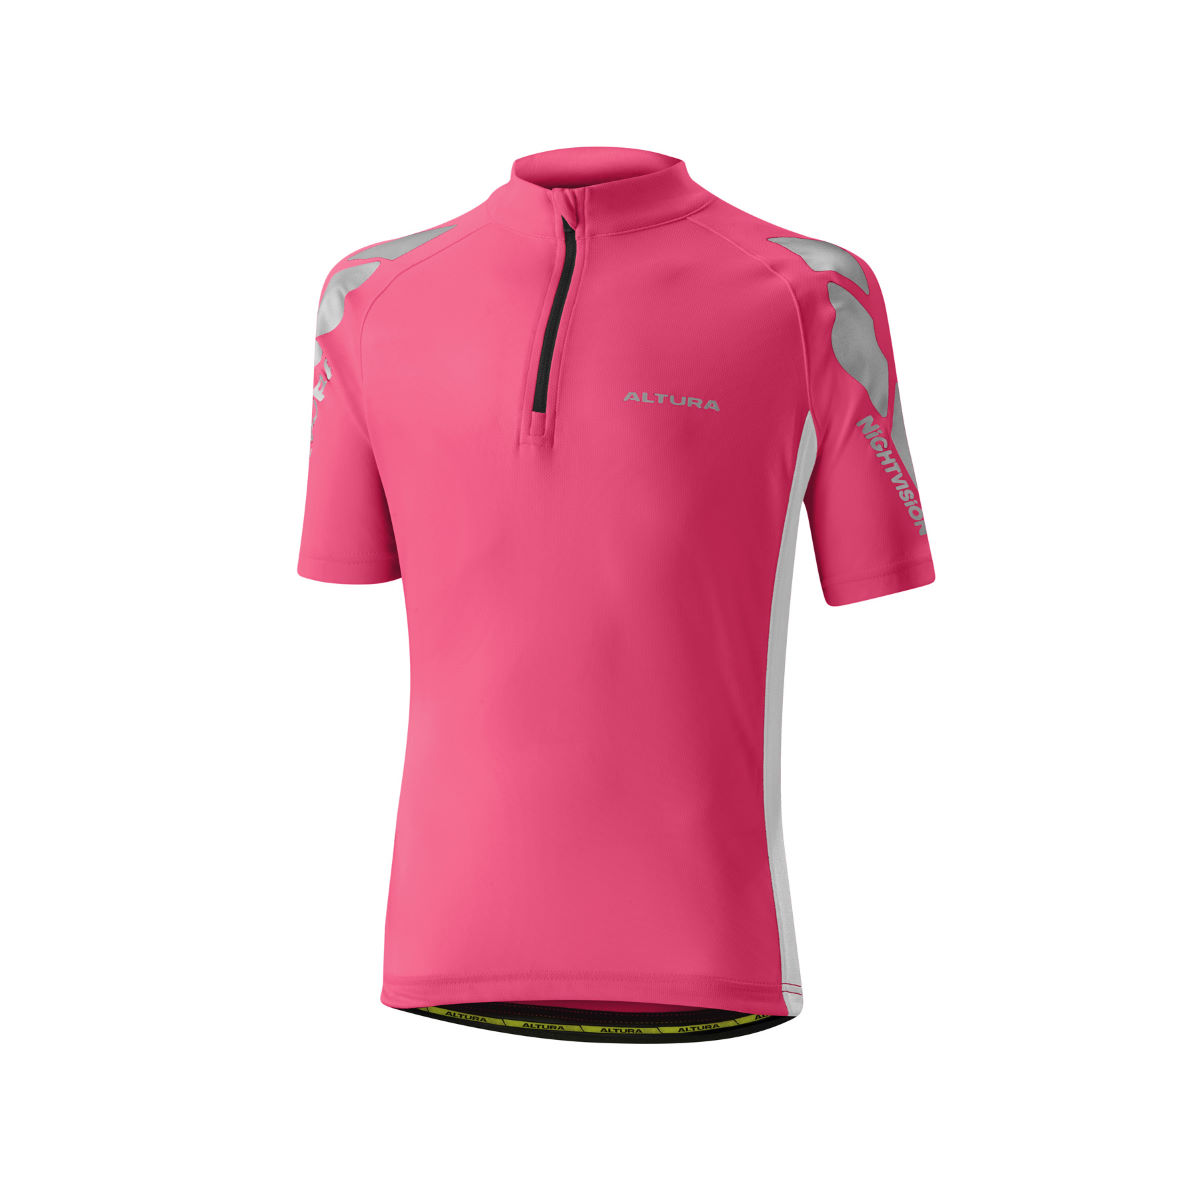 Maillot Enfant Altura Night Vision (manches courtes) - 5-6 years